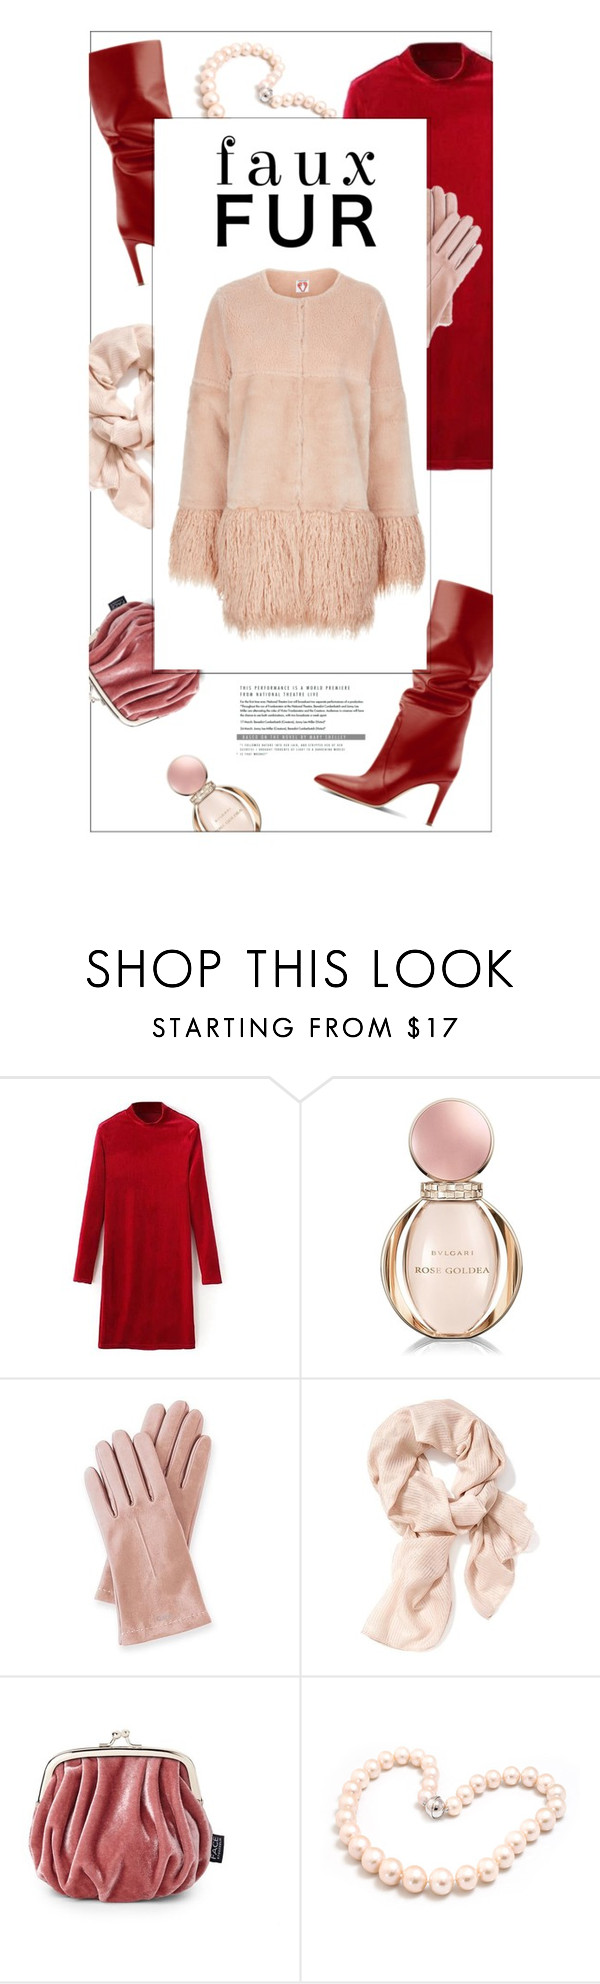 """#fauxfurcoats"" by vinograd24 ❤ liked on Polyvore featuring Bulgari, Mark & Graham, Old Navy, FACE Stockholm, Hiho Silver, Shrimps and fauxfurcoats"